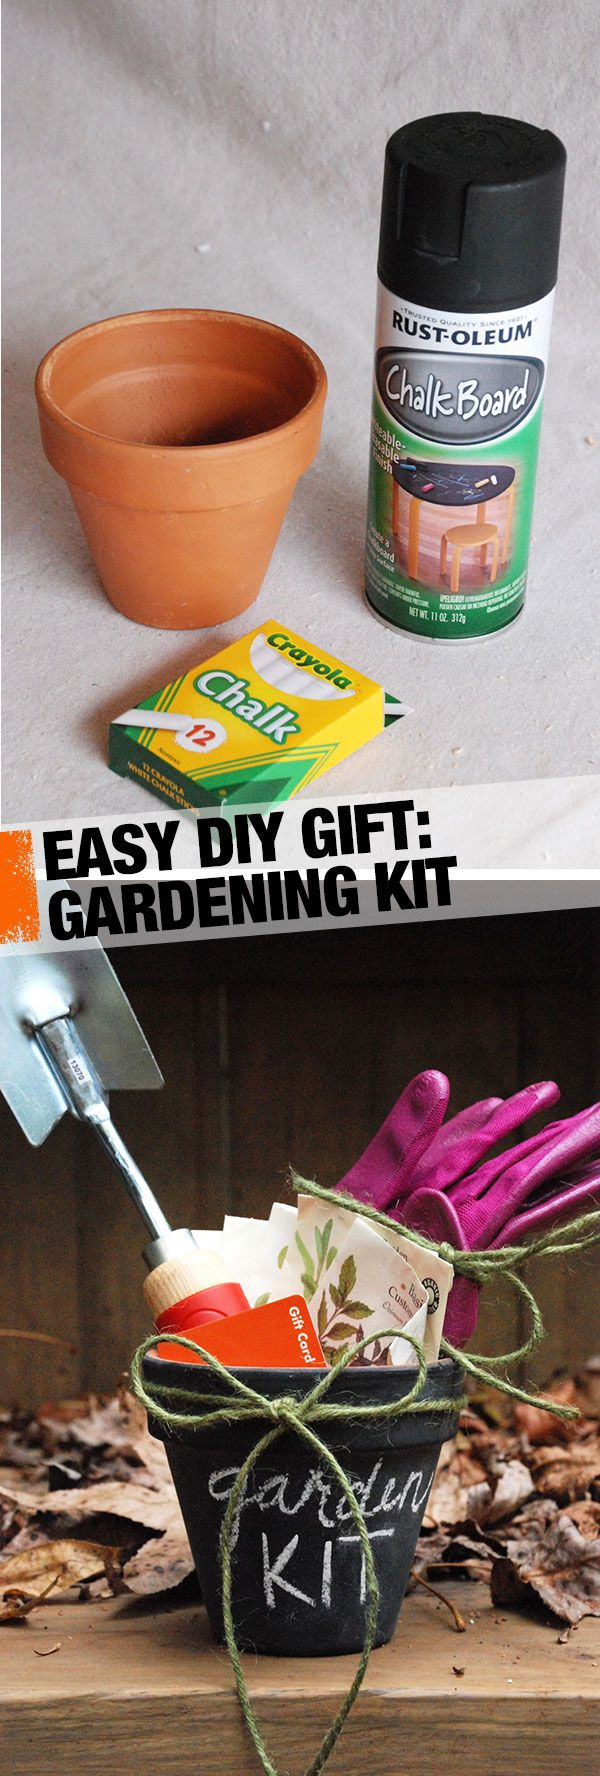 wish gifting stunning have ideas cool gardening popular us gardener the appealing pic gardeners and best garden great for u list enthusiast everything gifts who xfile